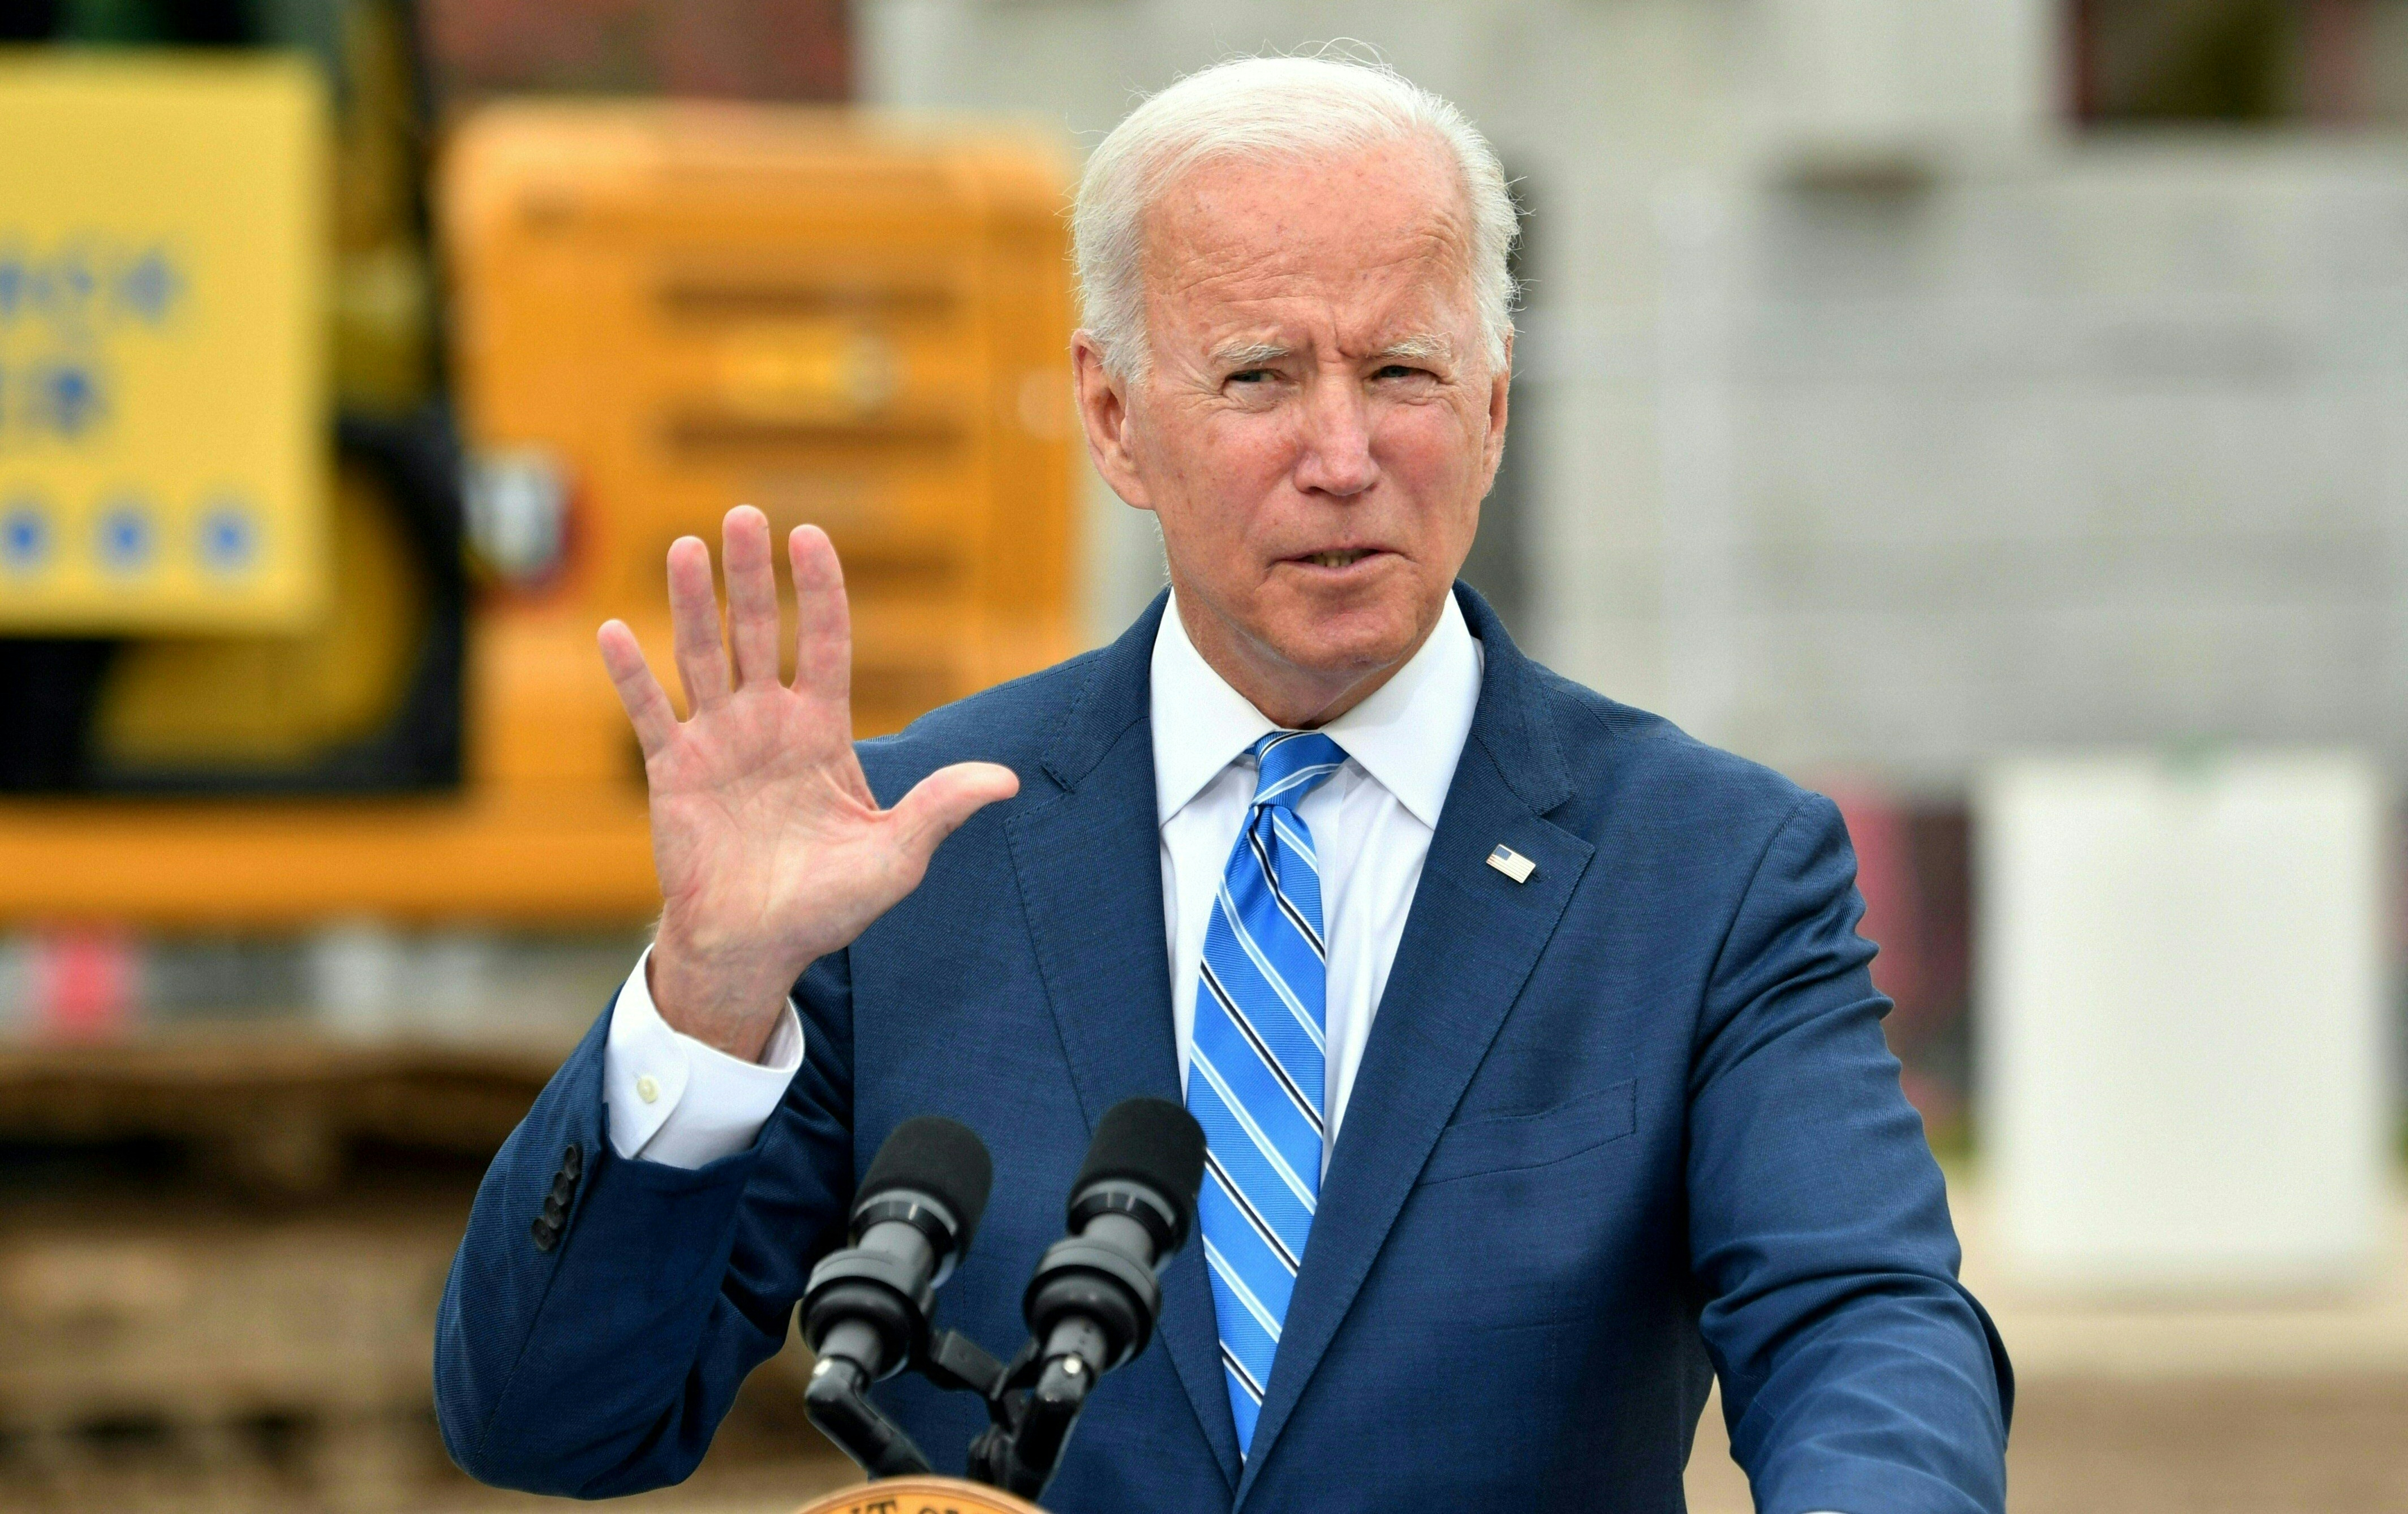 Joe Biden speaks about the bipartisan infrastructure bill and his Build Back Better agenda at the International Union of Operating Engineers Training Facility in Howell, Michigan, on October 5, 2021. (Photo by NICHOLAS KAMM/AFP via Getty Images)